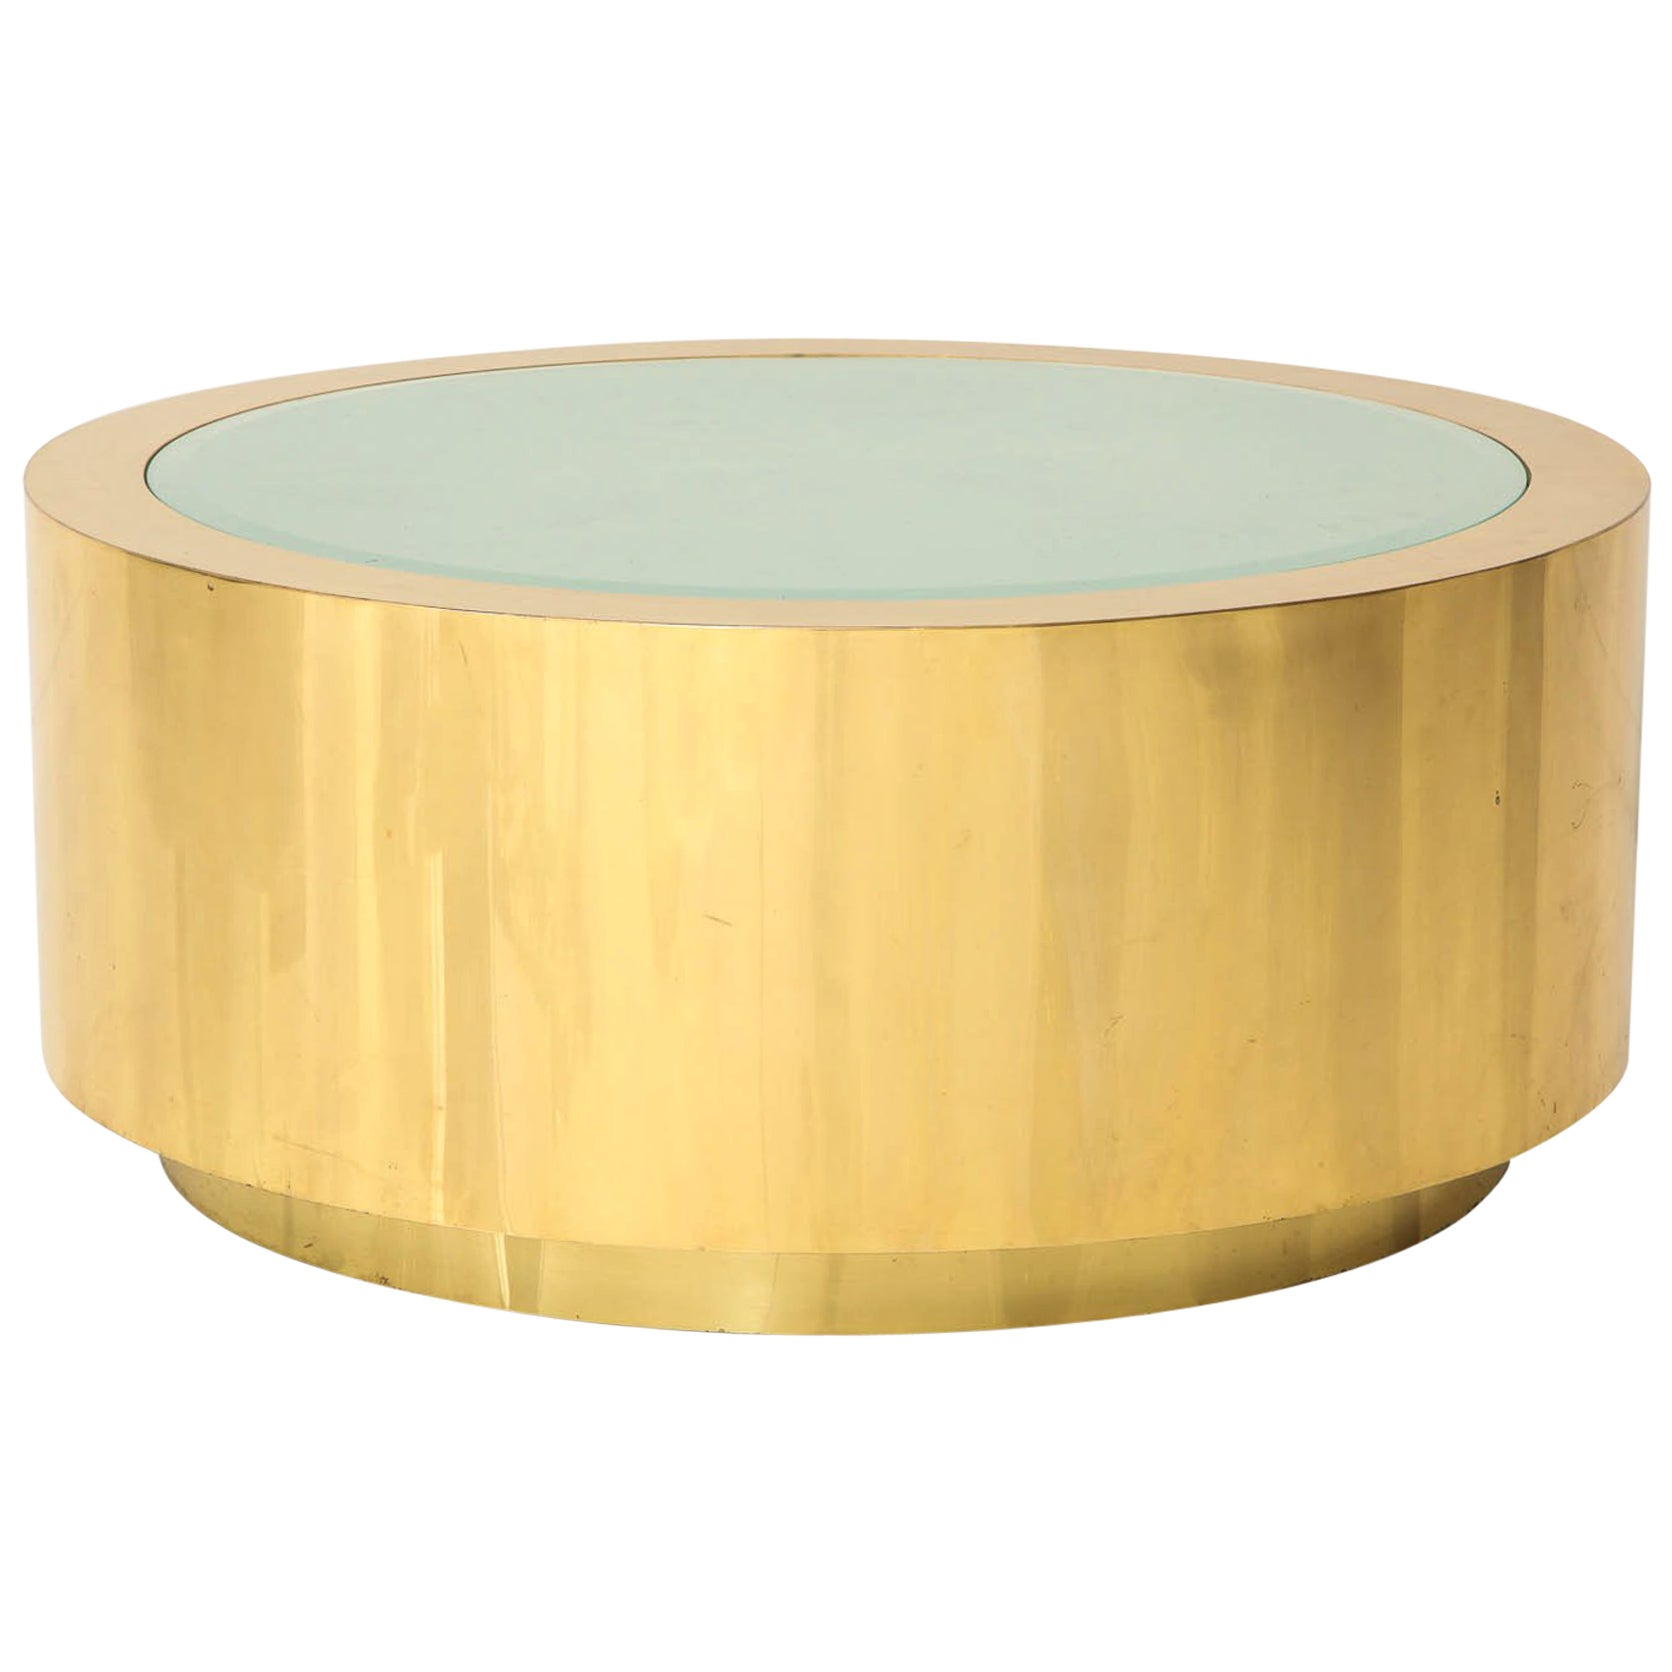 Fabulous Brass and Glass Coffee Table by Steve Chase